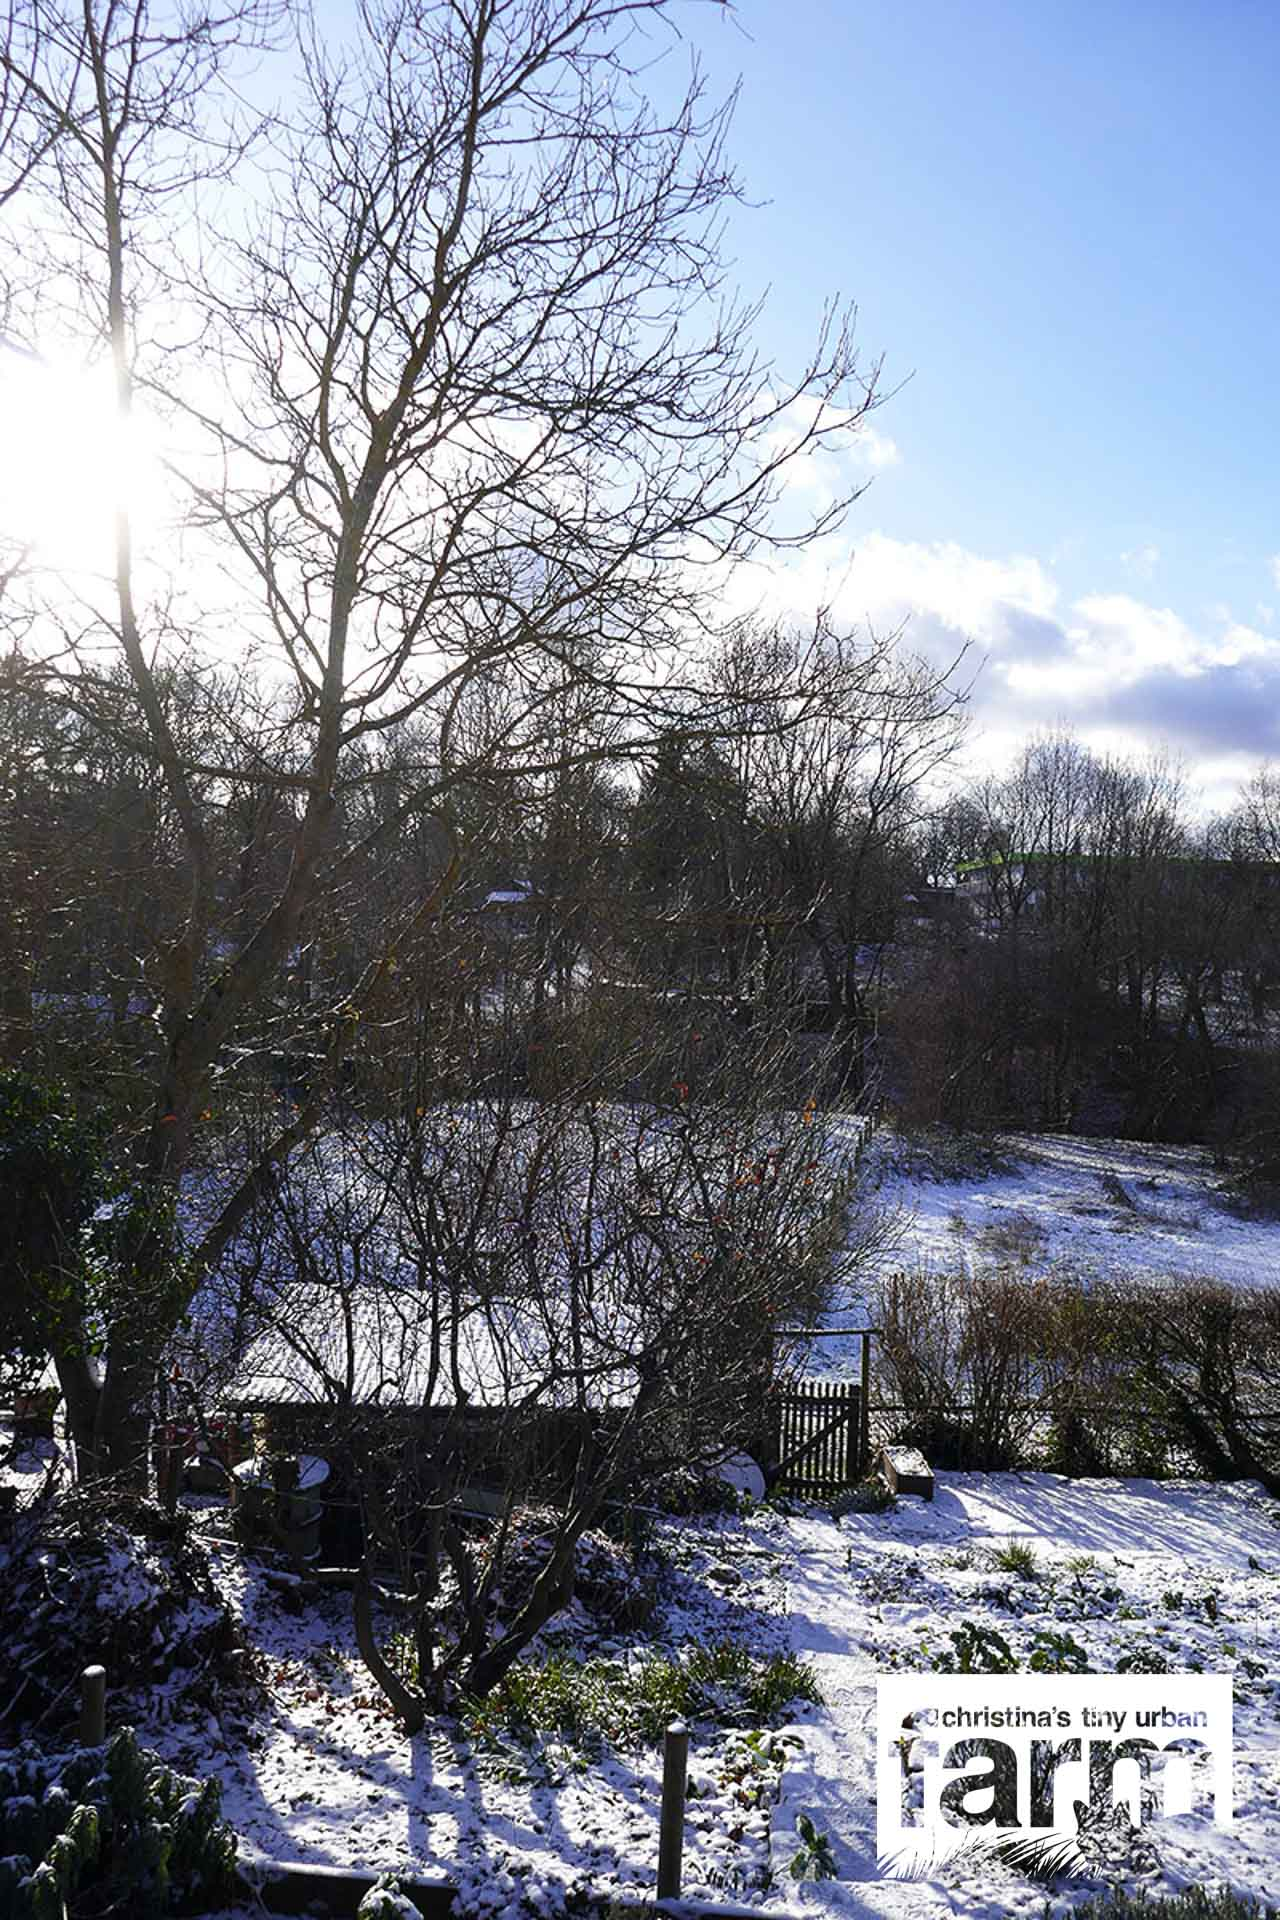 View of the garden and its surroundings in winter.